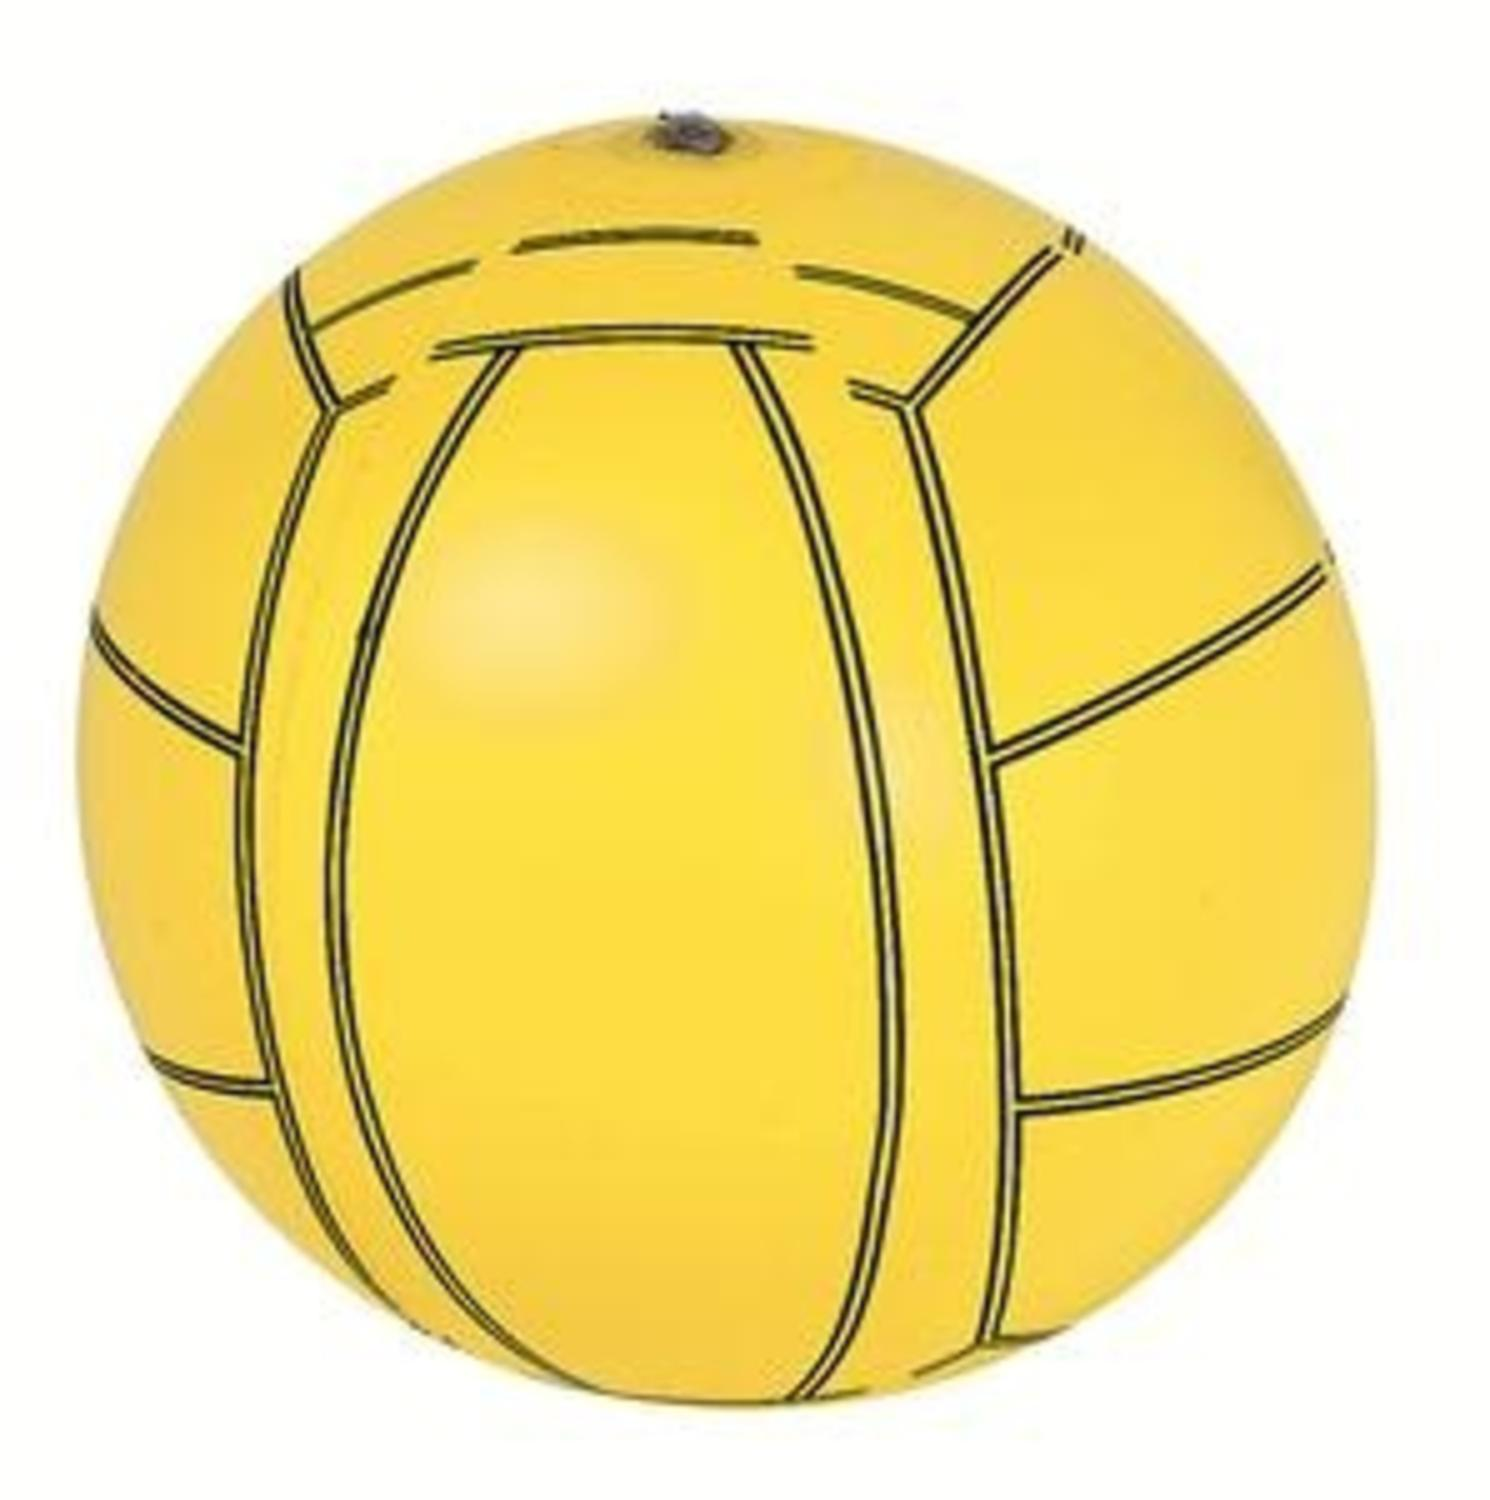 "16"" Yellow and Black 6-Panel Inflatable Beach Volleyball Swimming Pool Toy by Pool Central"